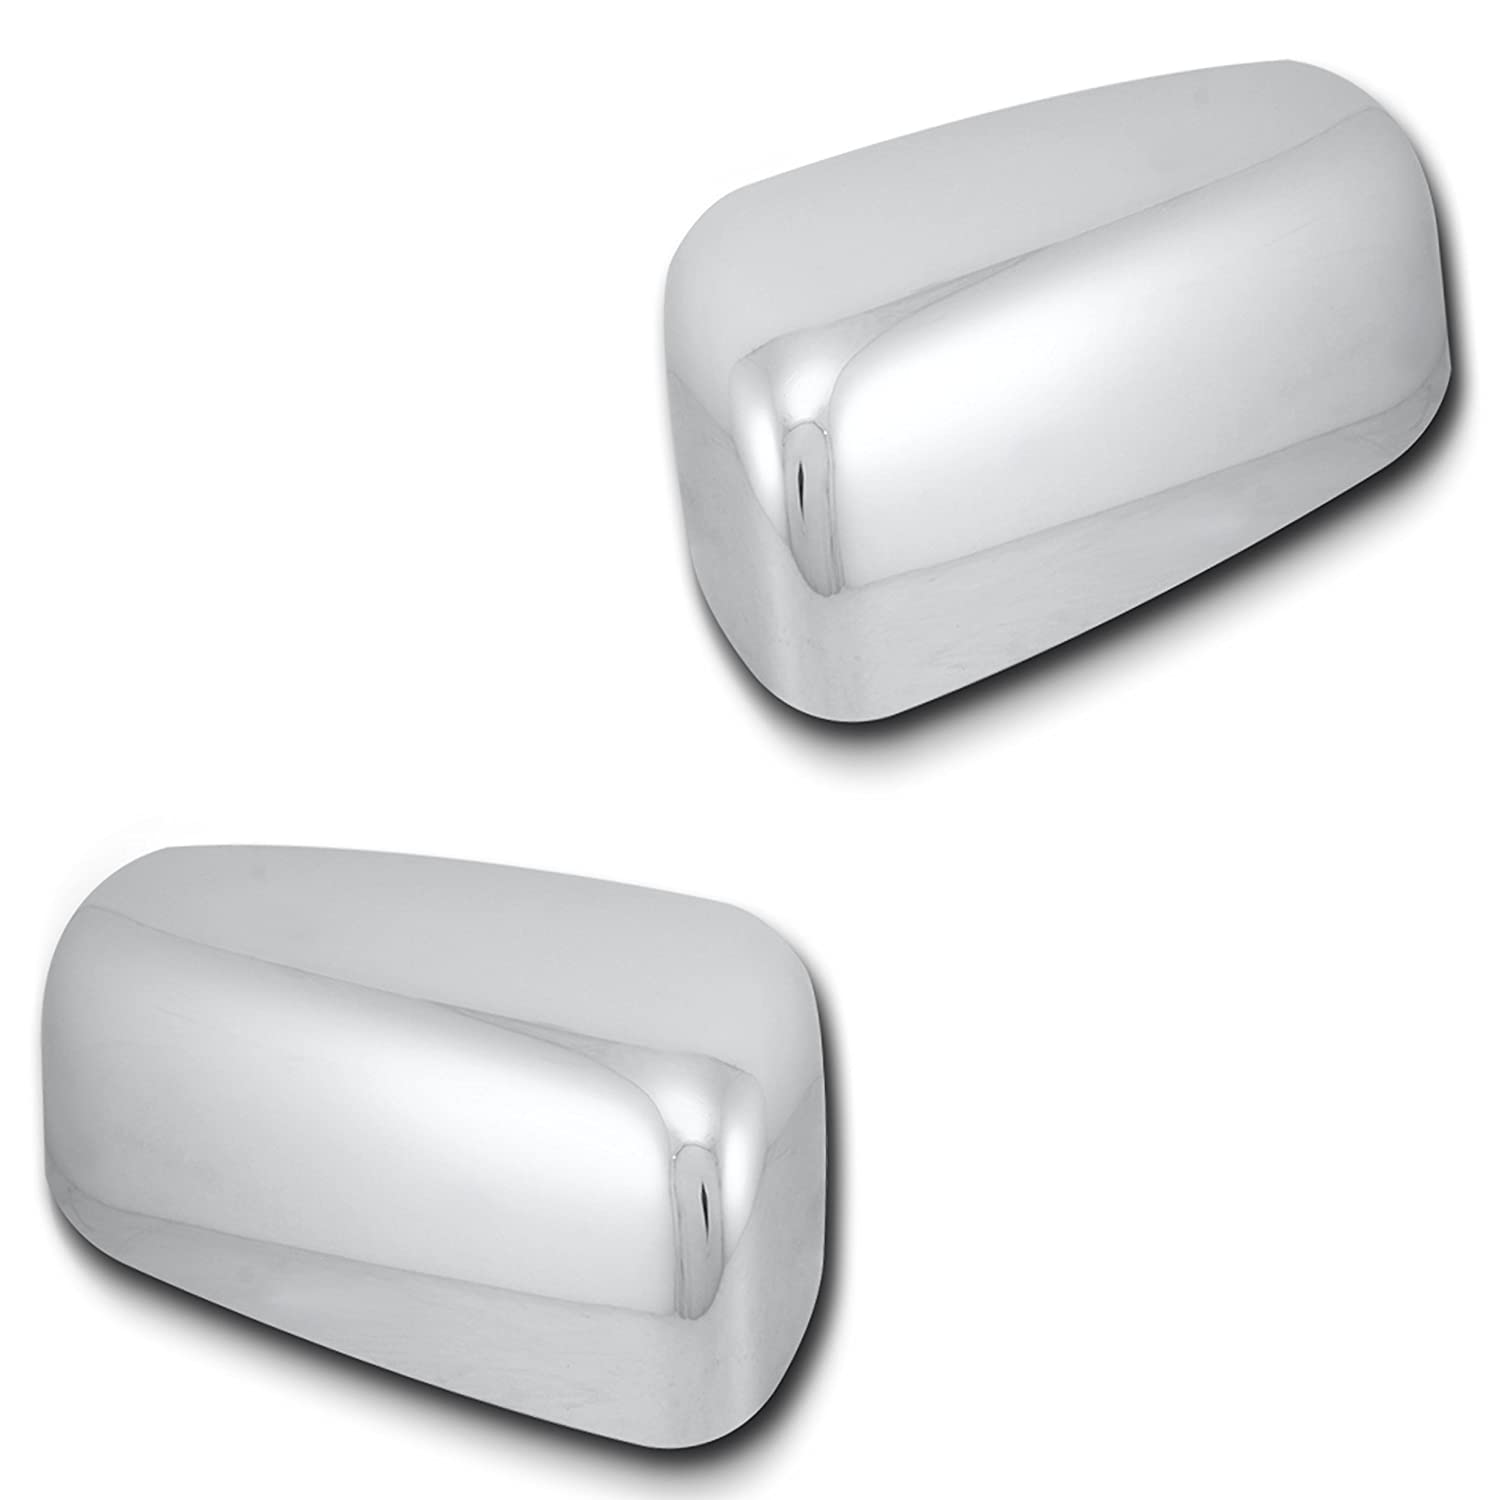 AutoModZone Chrome ABS Side View Mirror Upper Top Half Mirror Cover 2-pc Set for 09-17 Dodge Ram 1500 with Turn Signal Cutout